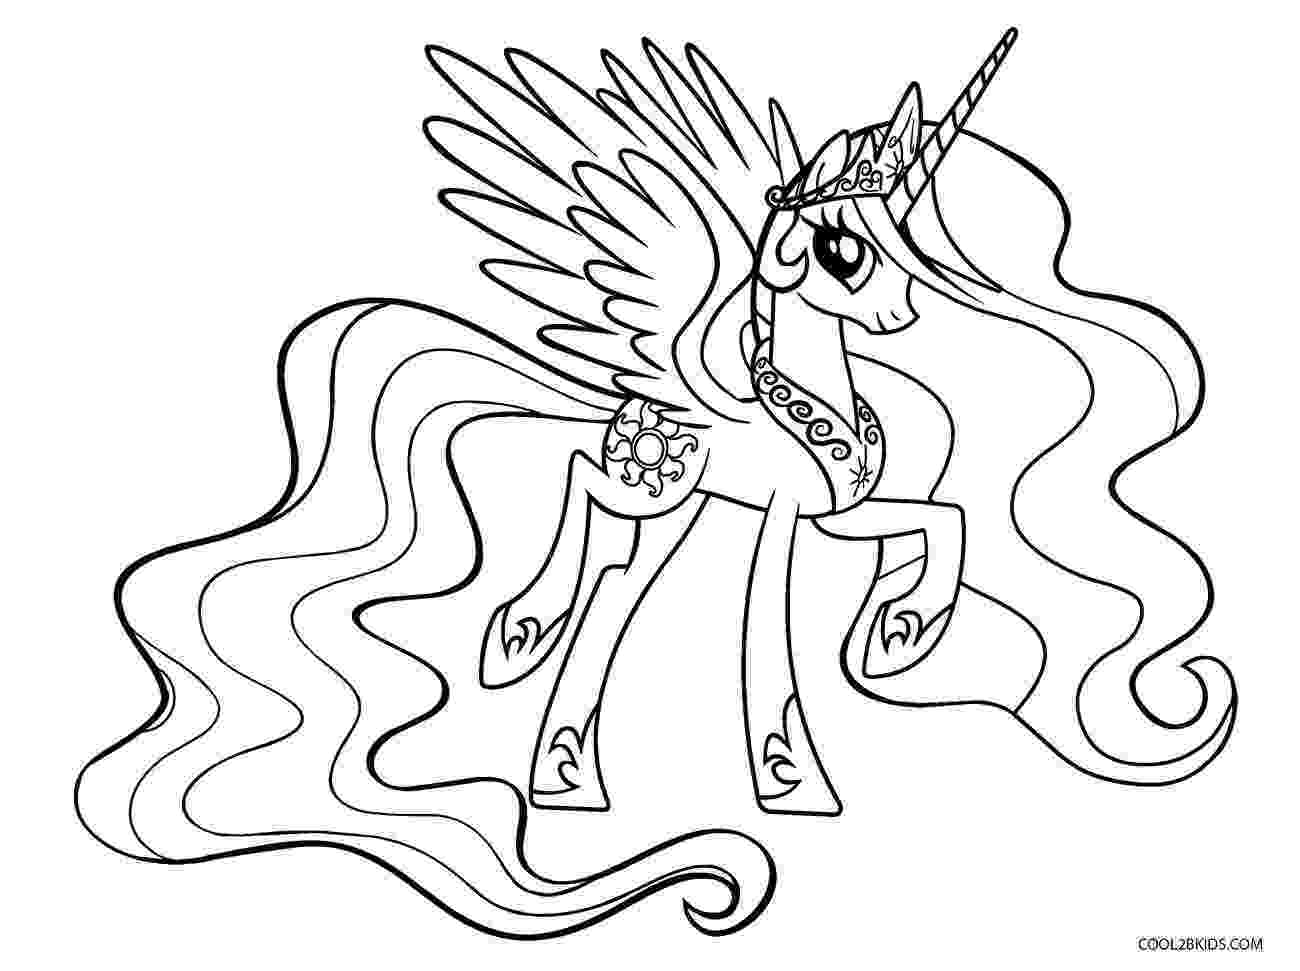 my little pony coloring sheets my little pony coloring pages friendship is magic team pony my little coloring sheets